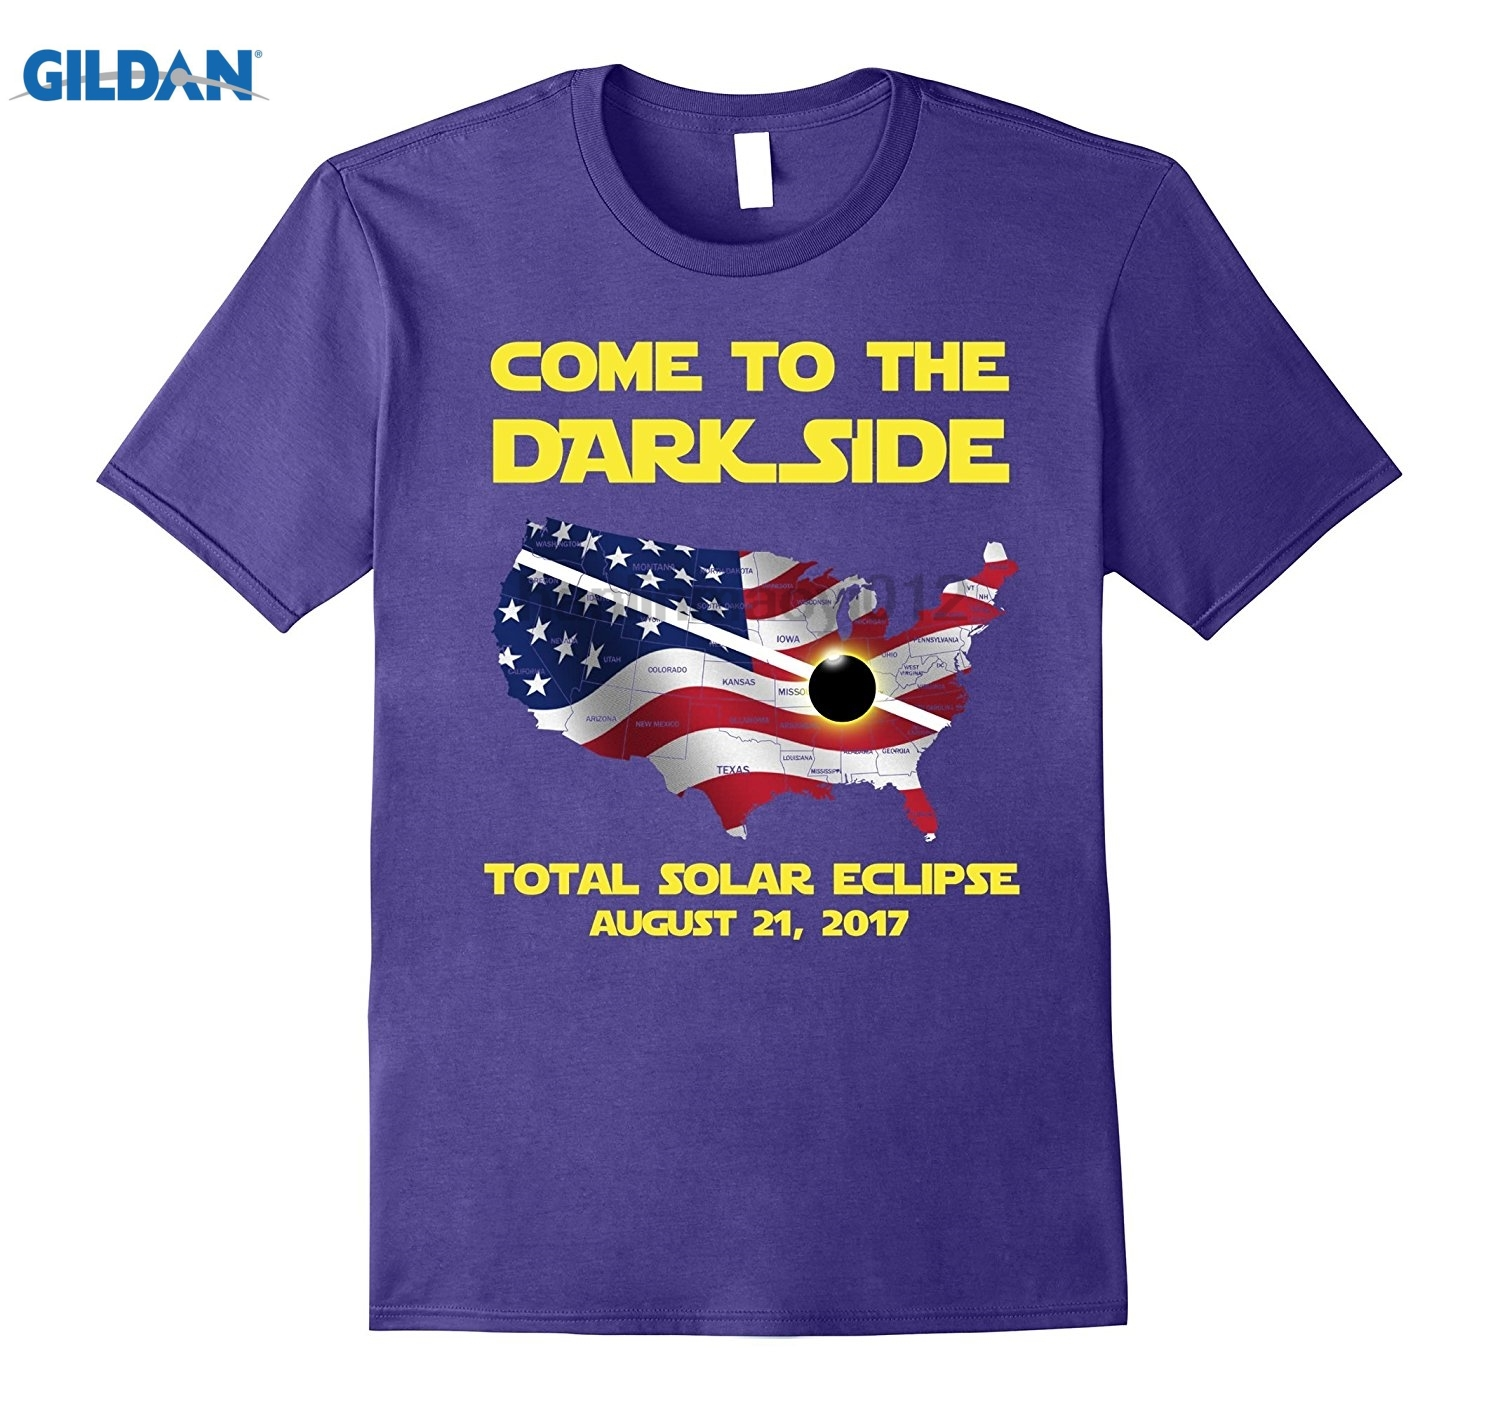 GILDAN Come to the Dark Side Total solar eclipse August 21 Hot Womens T-shirt sunglasses women T-shirt summer dress T-shirt